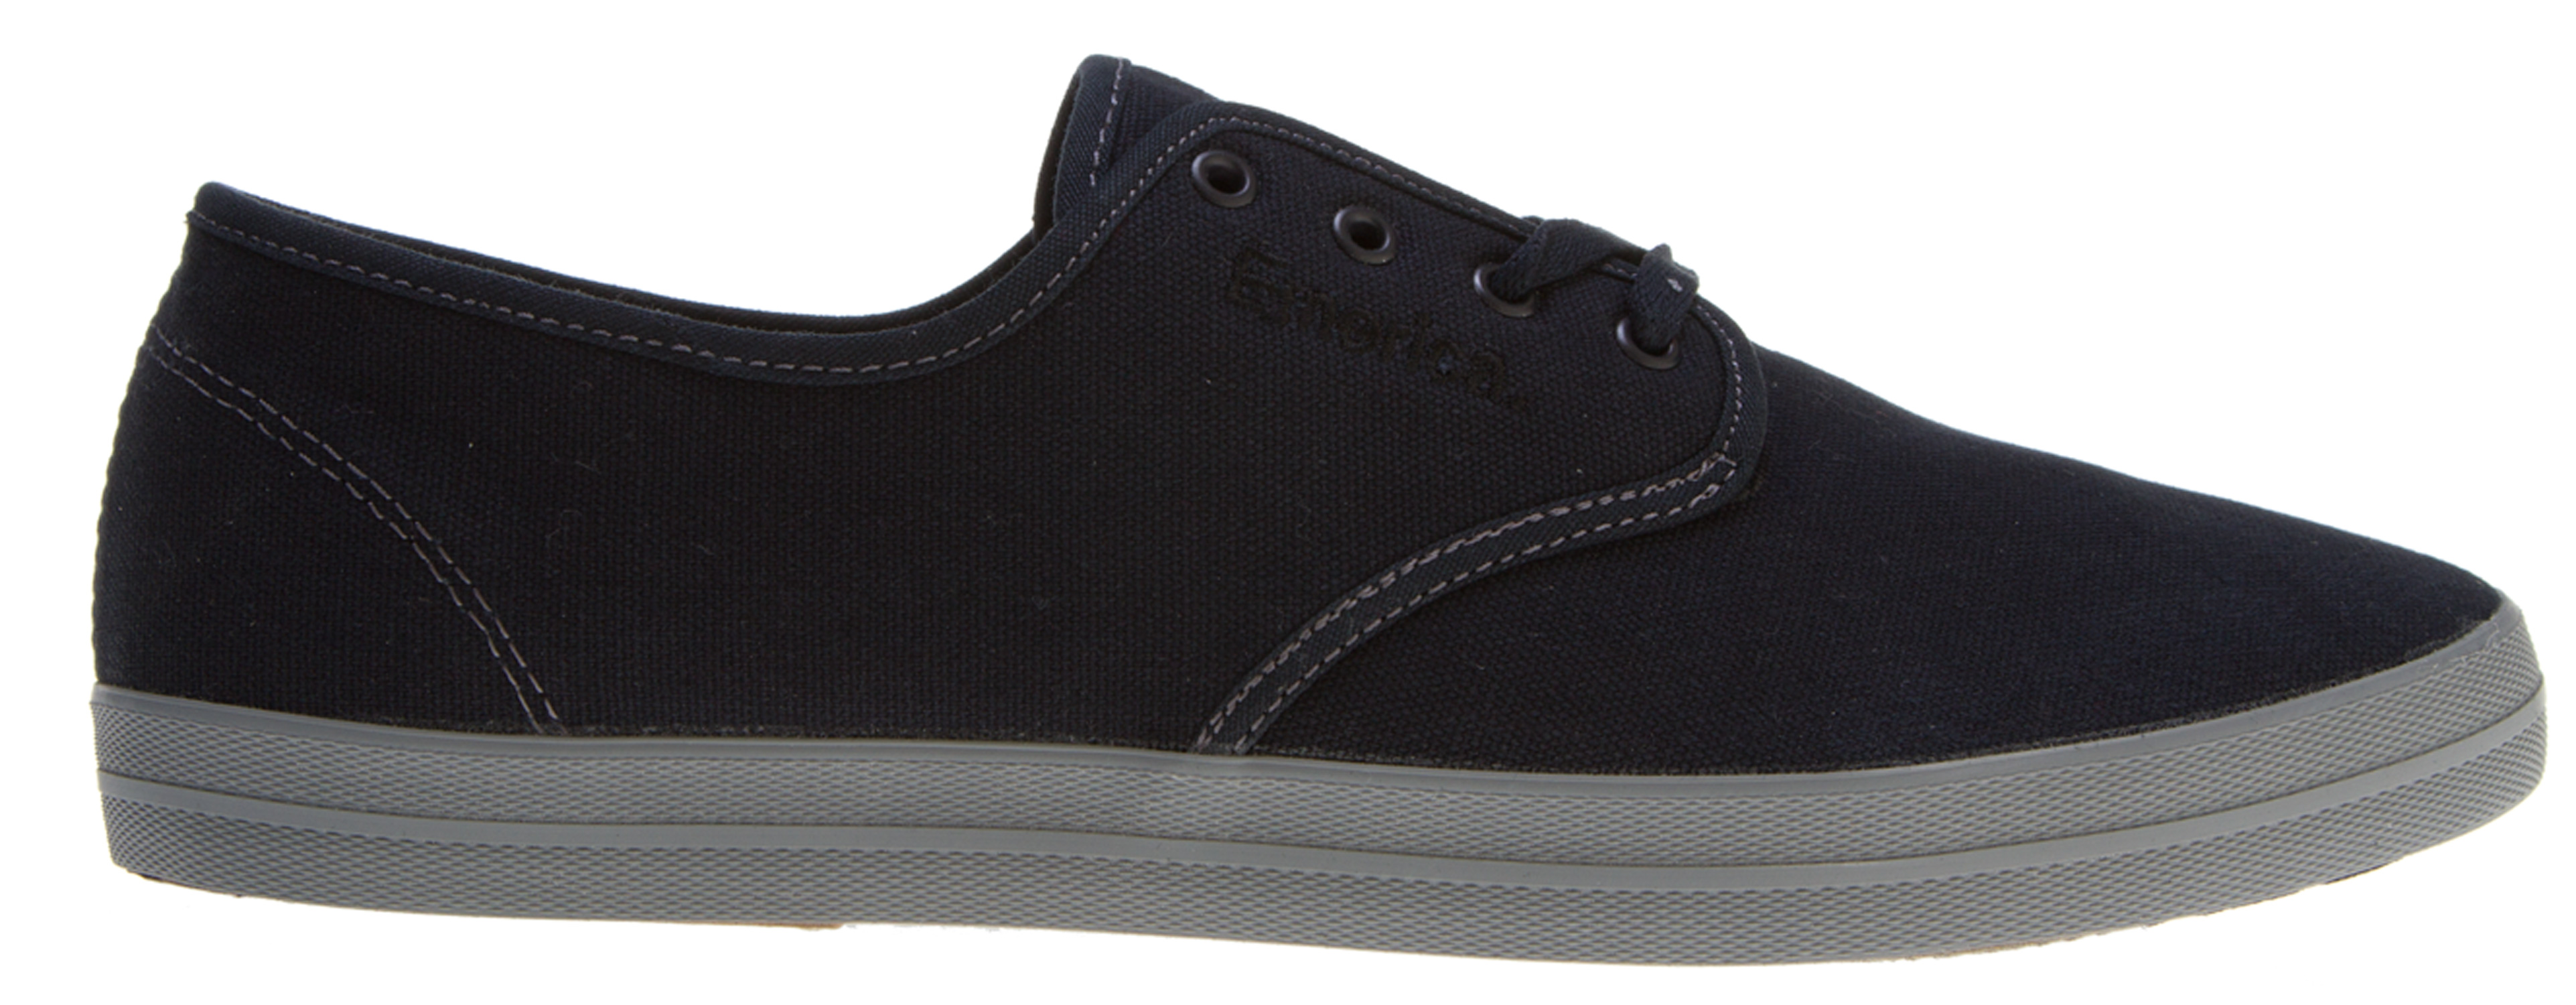 Skateboard Key Features of the Emerica Wino Fusion Skate Shoes: Suede, textile or canvas upper materials EVA footbed Fusion outsole - $39.95